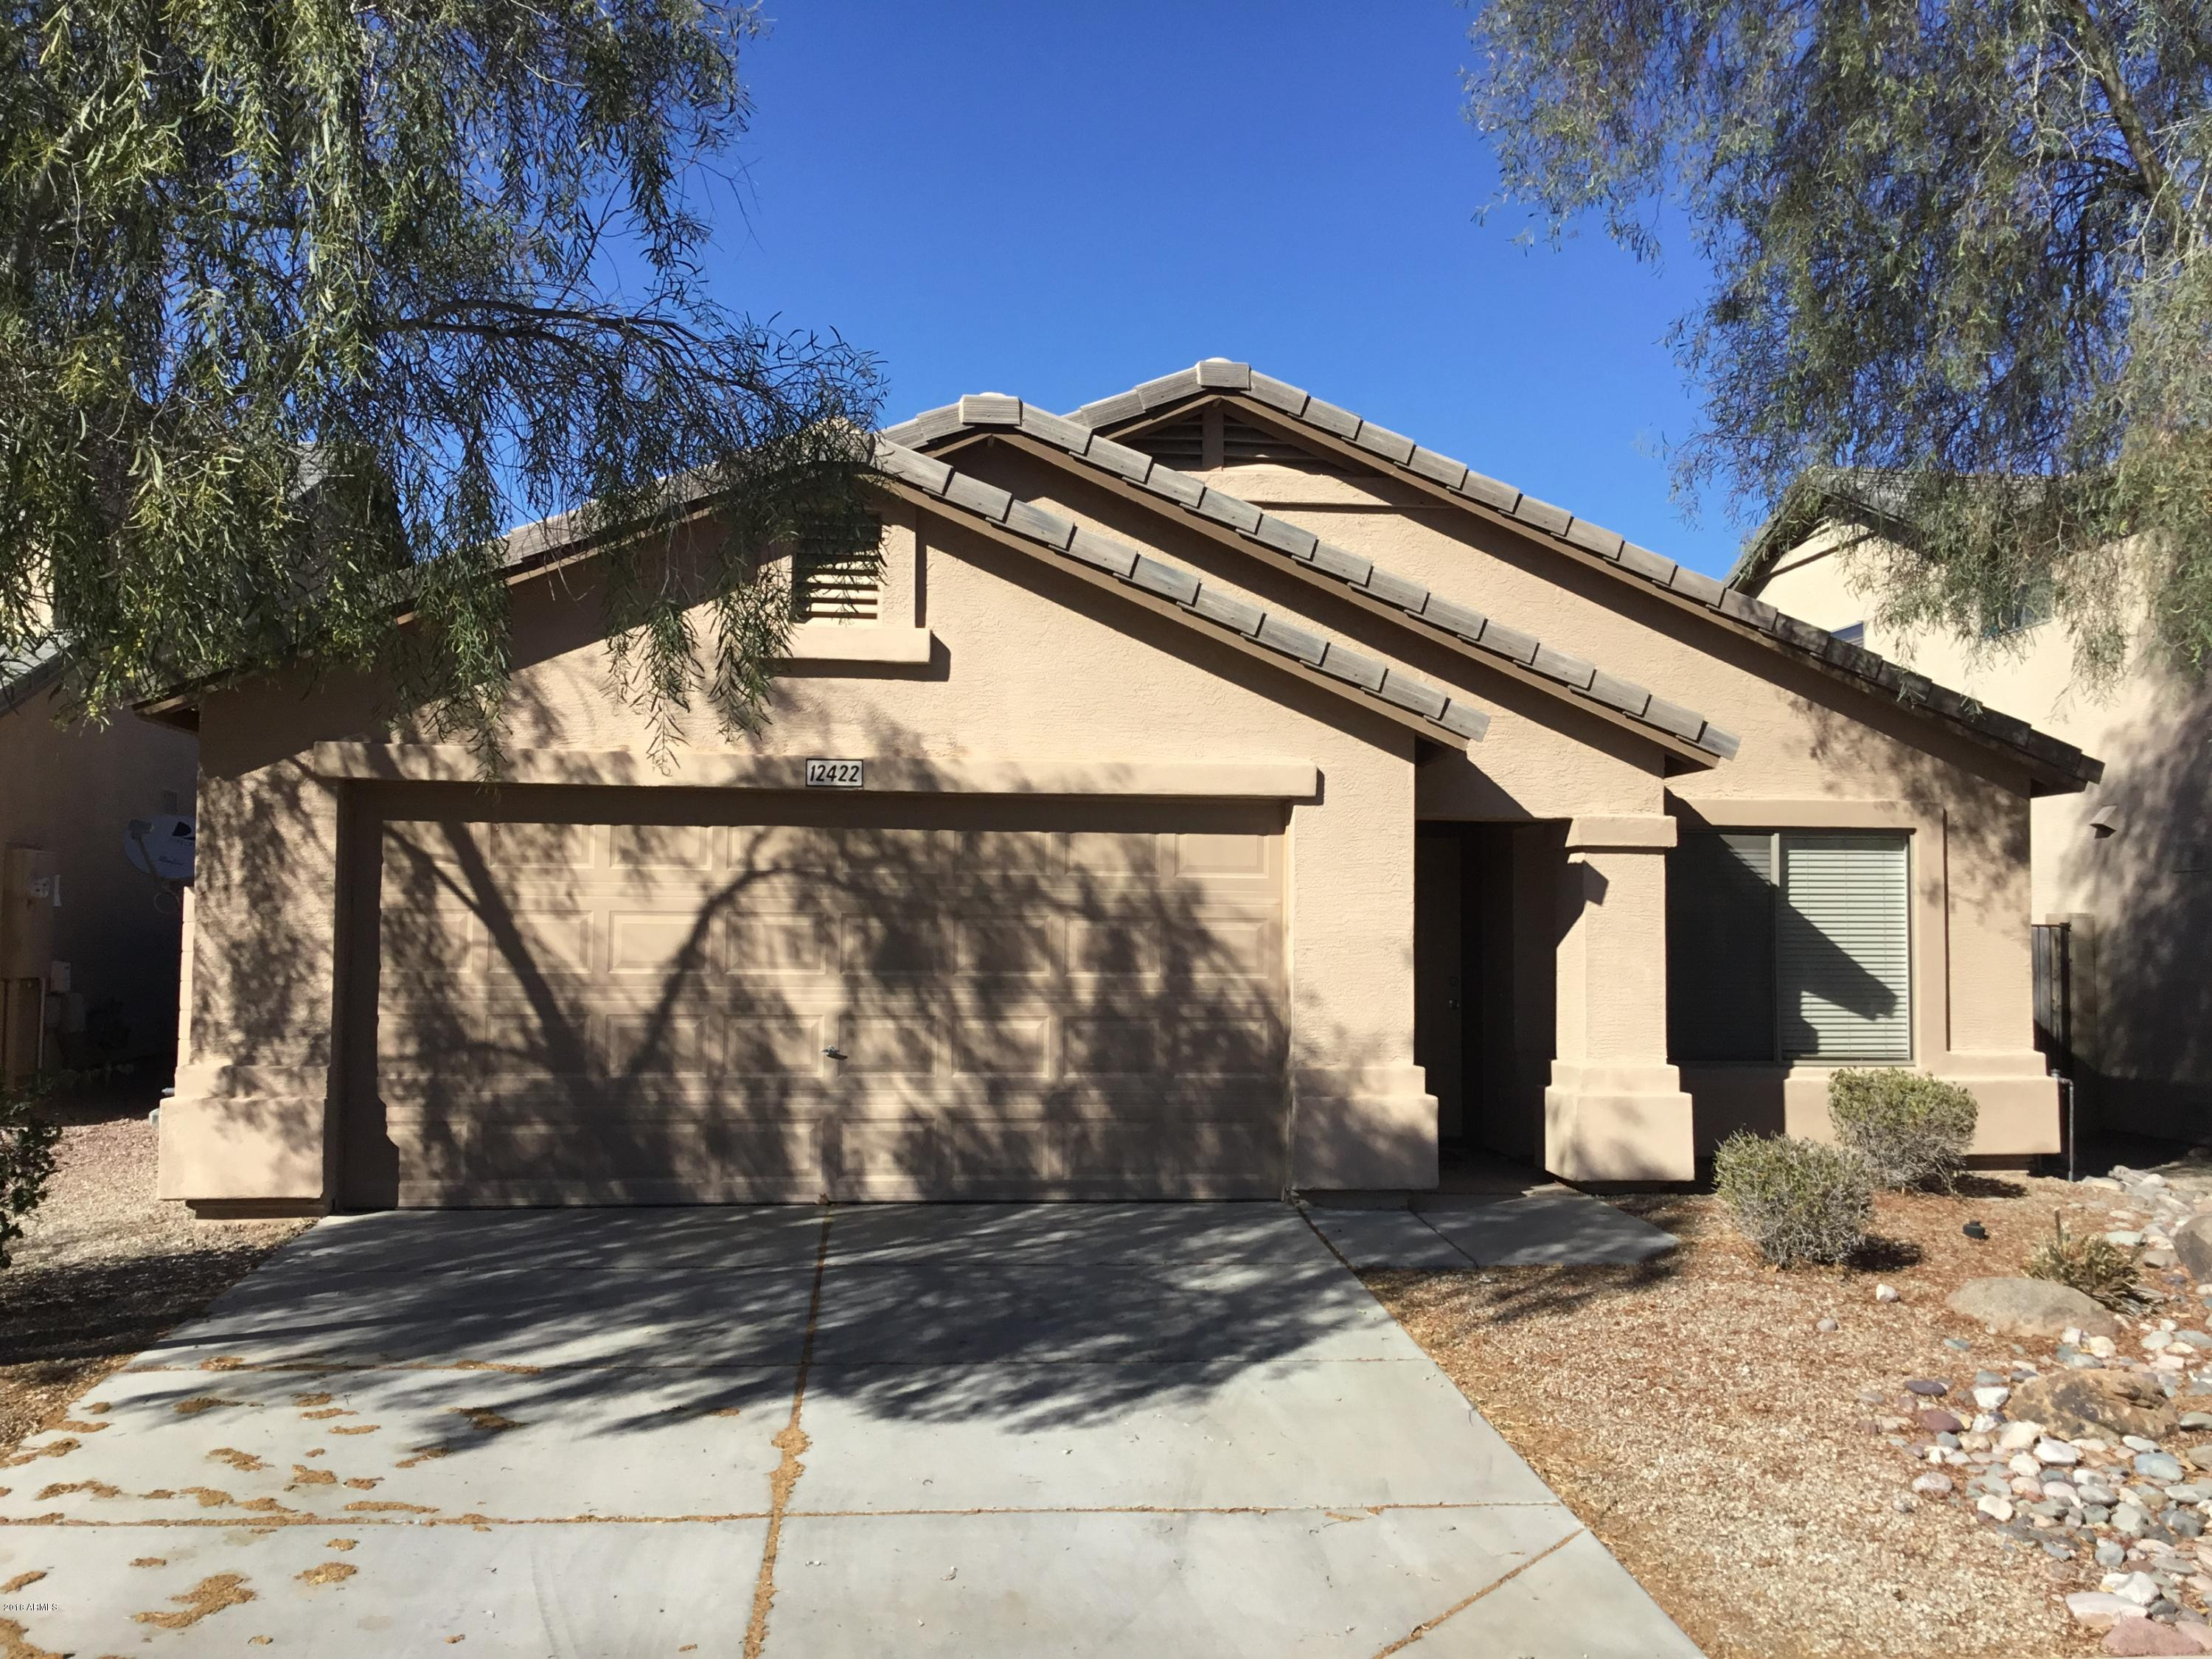 Photo of 12422 W VERMONT Avenue, Litchfield Park, AZ 85340